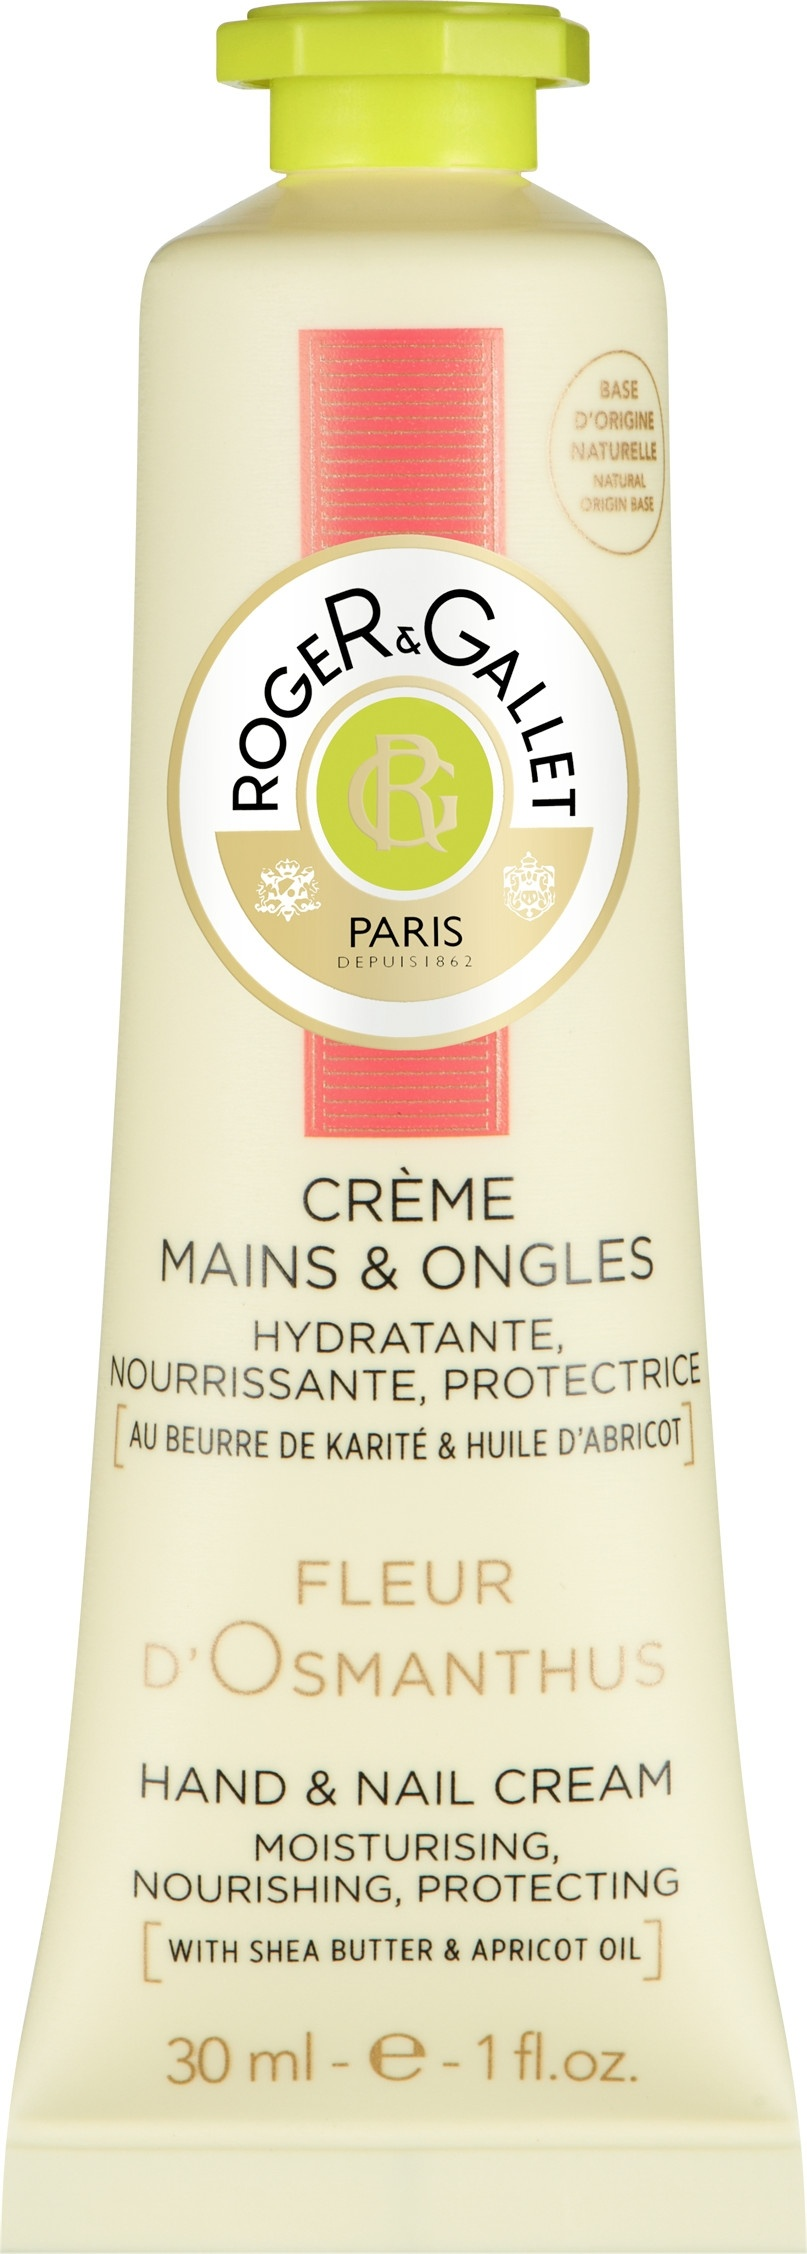 Roger & Gallet Fleur D'Osmanthus Hand and Nail Cream 30ml